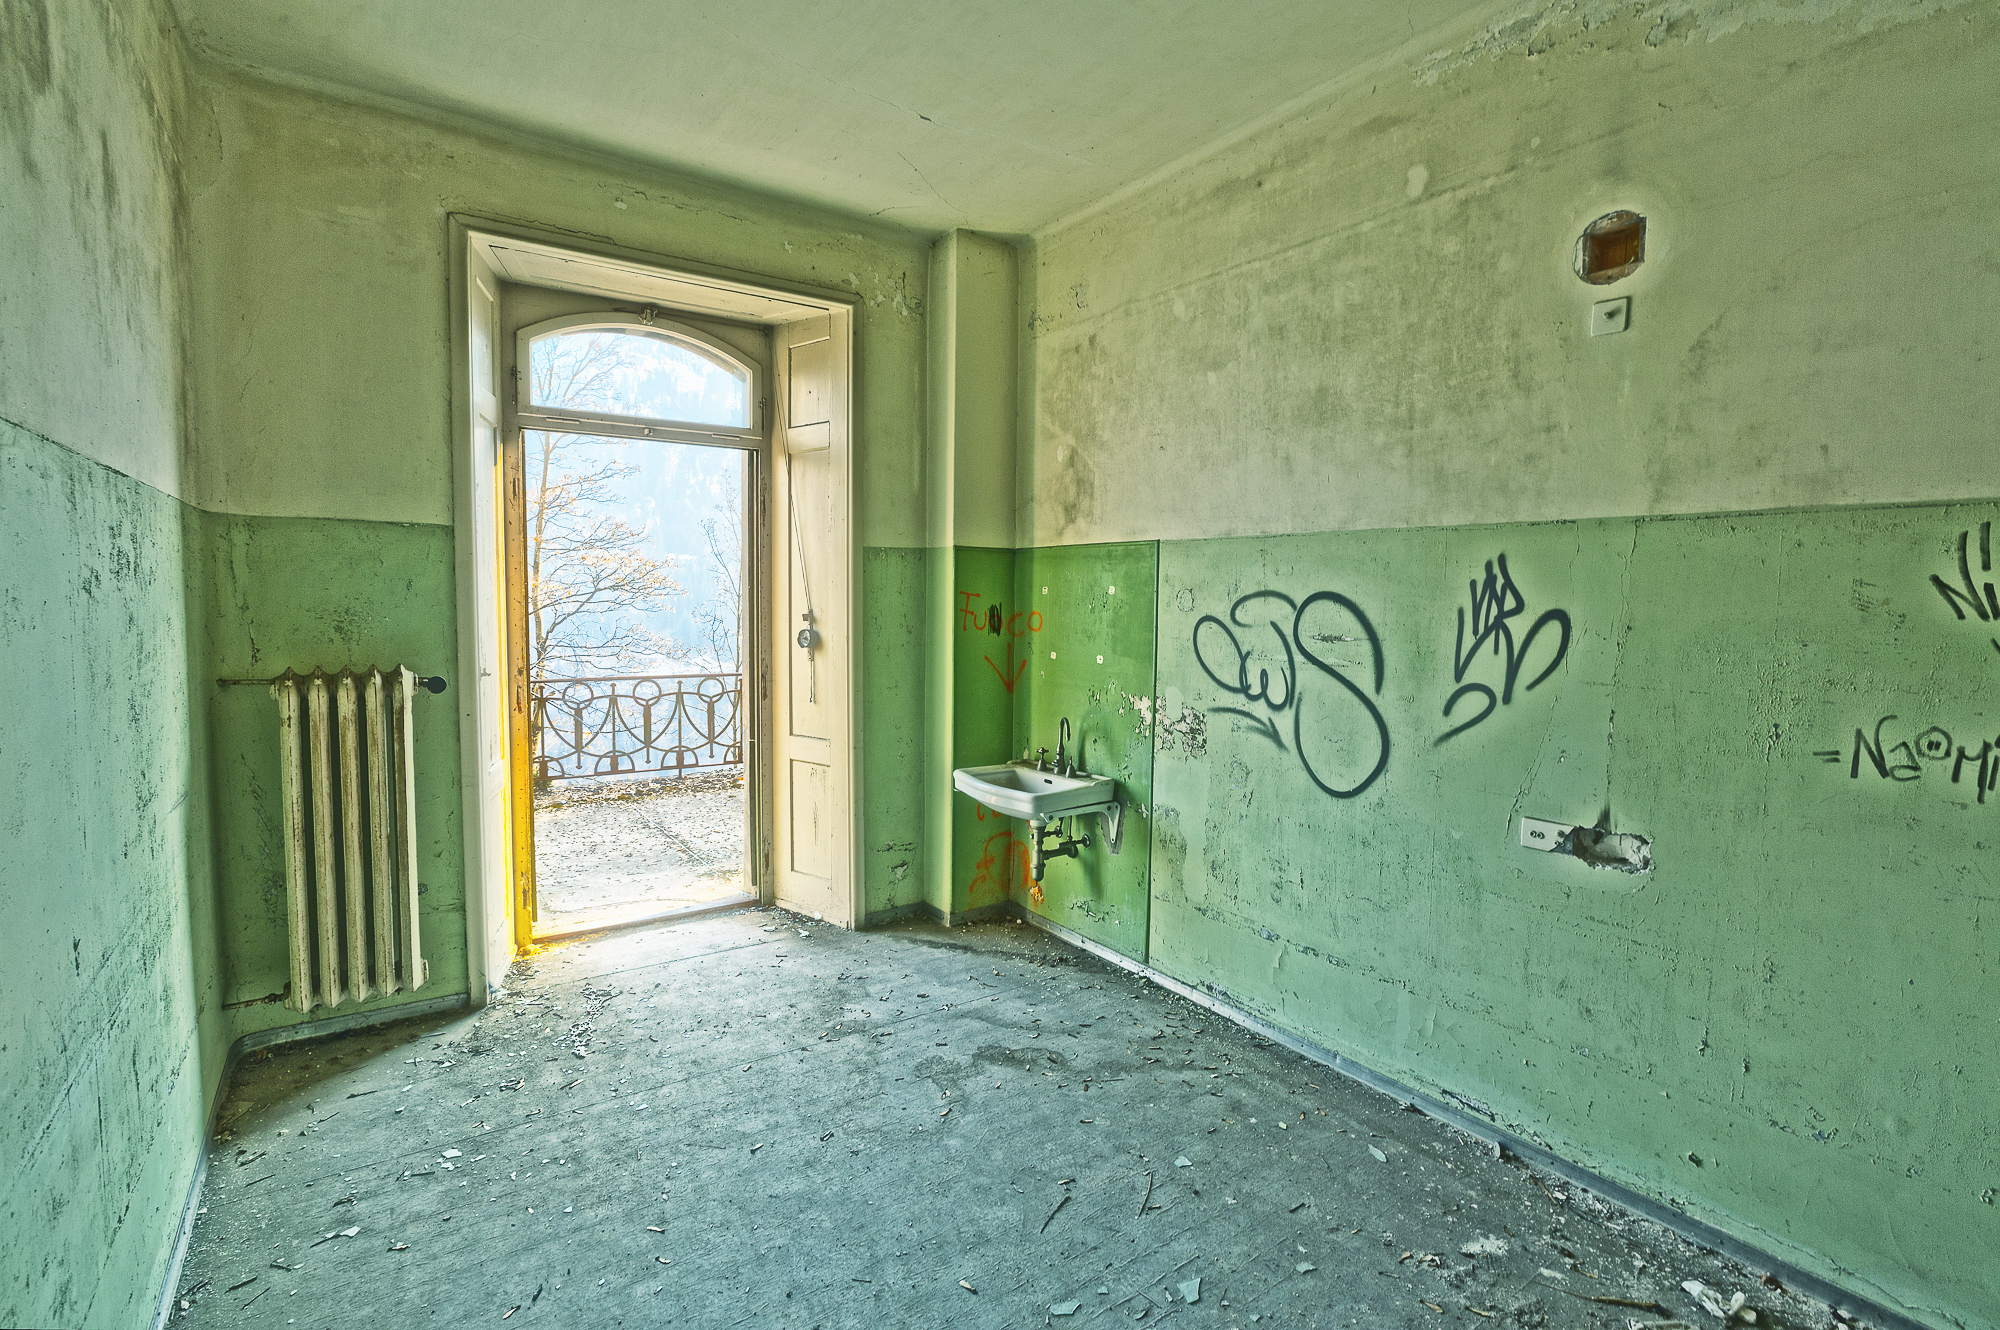 Sanatorium-Ticino-Switzerland-Lost Place 3